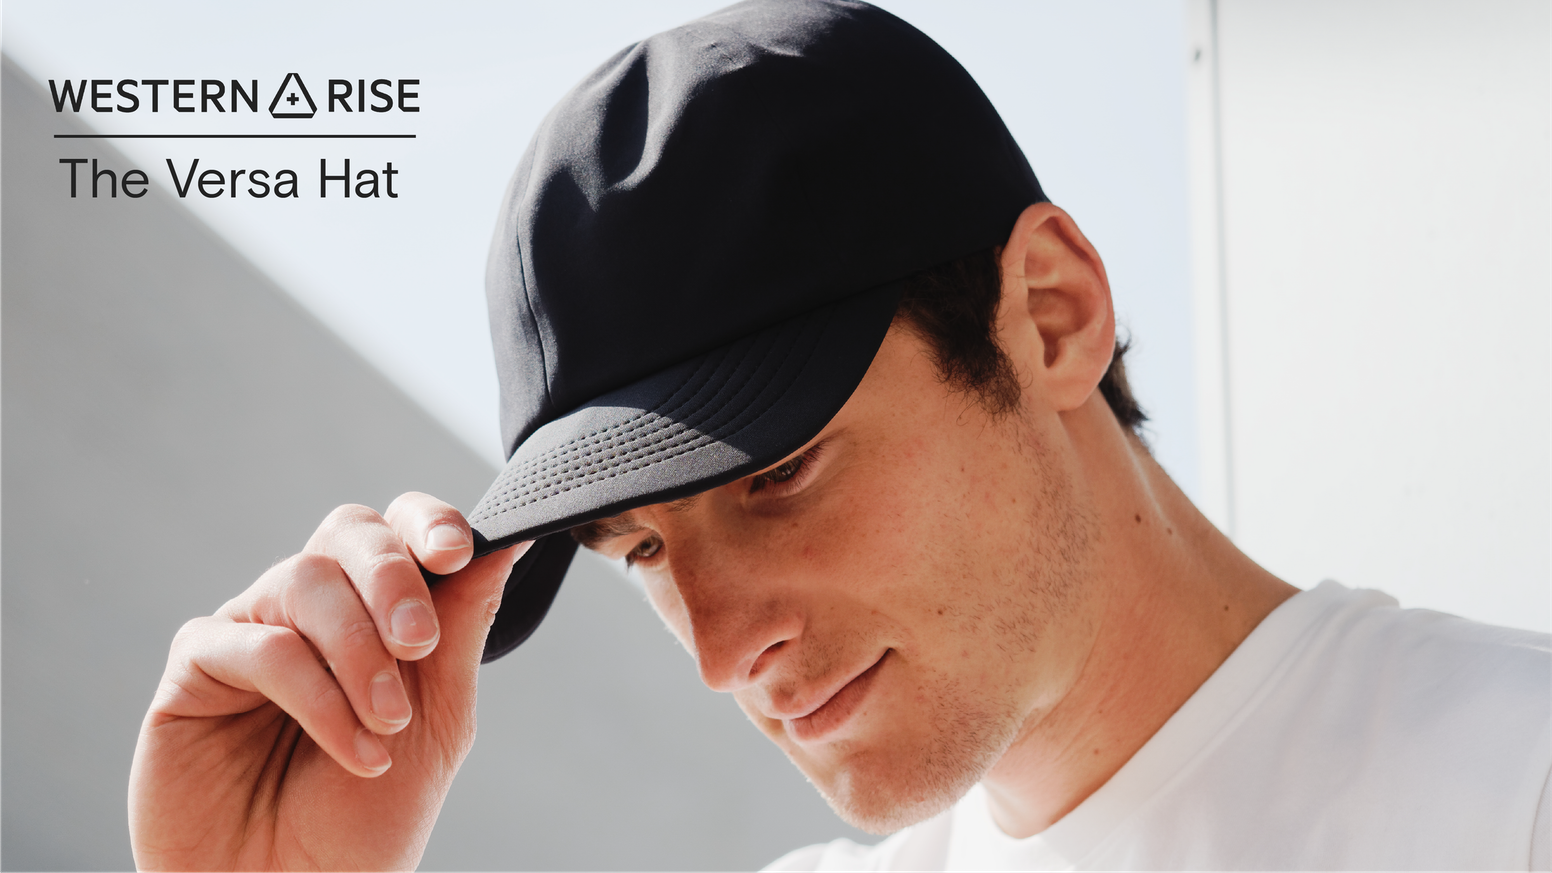 A crushable, waterproof, stretchy hat designed for unmatched versatility. The hat, reinvented.